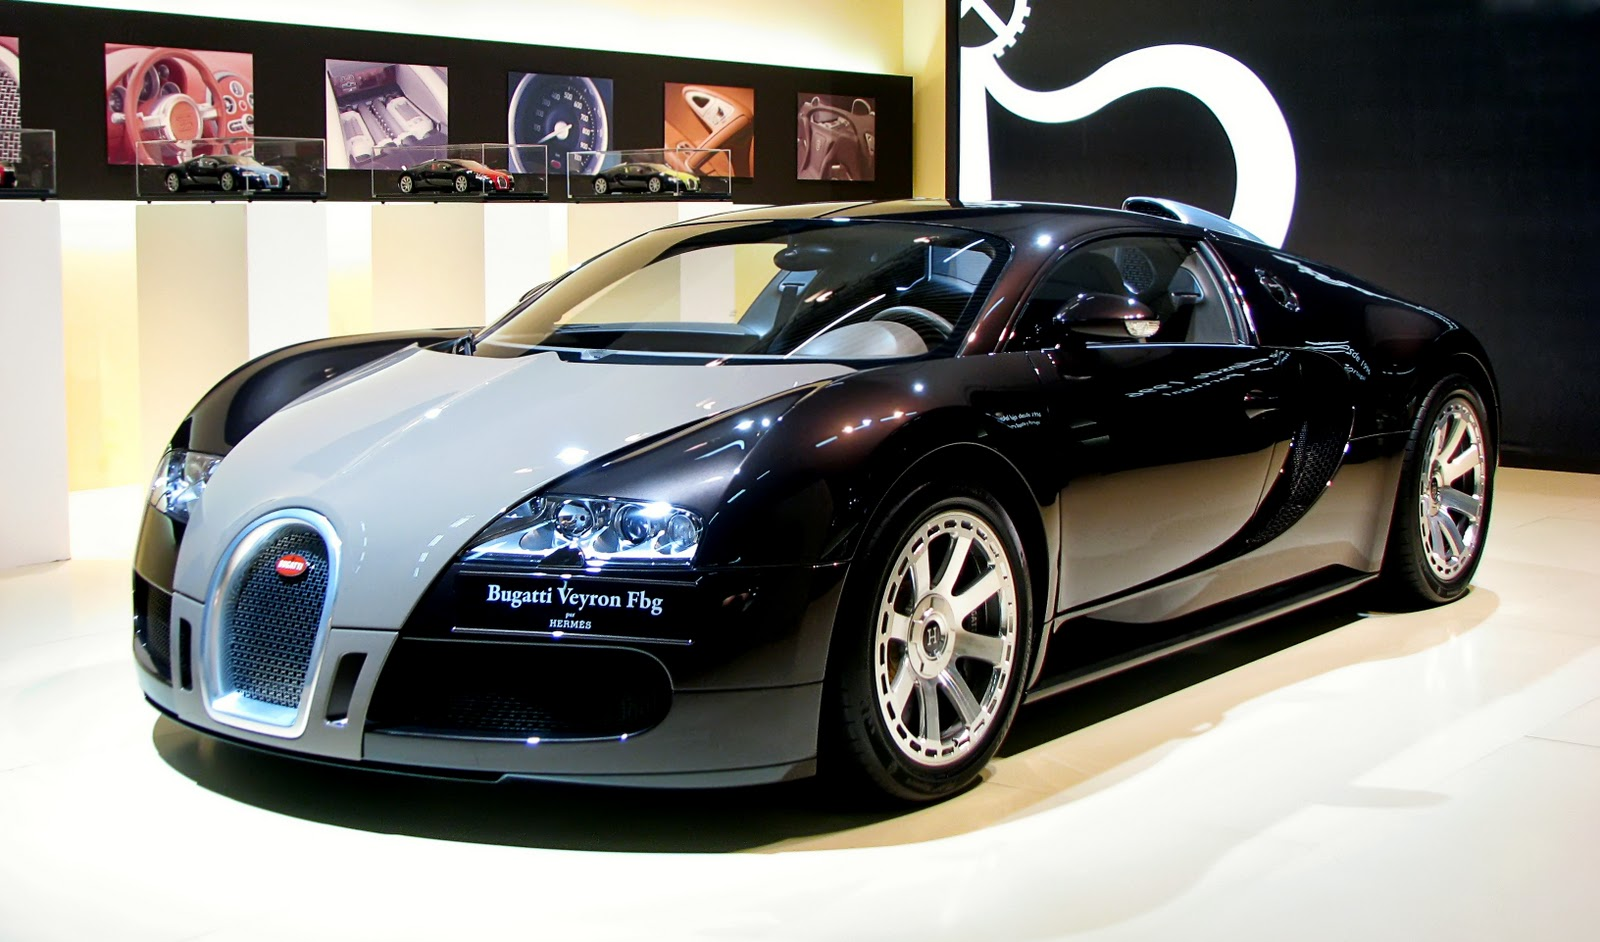 Top Cool Cars: Bugatti Veyron